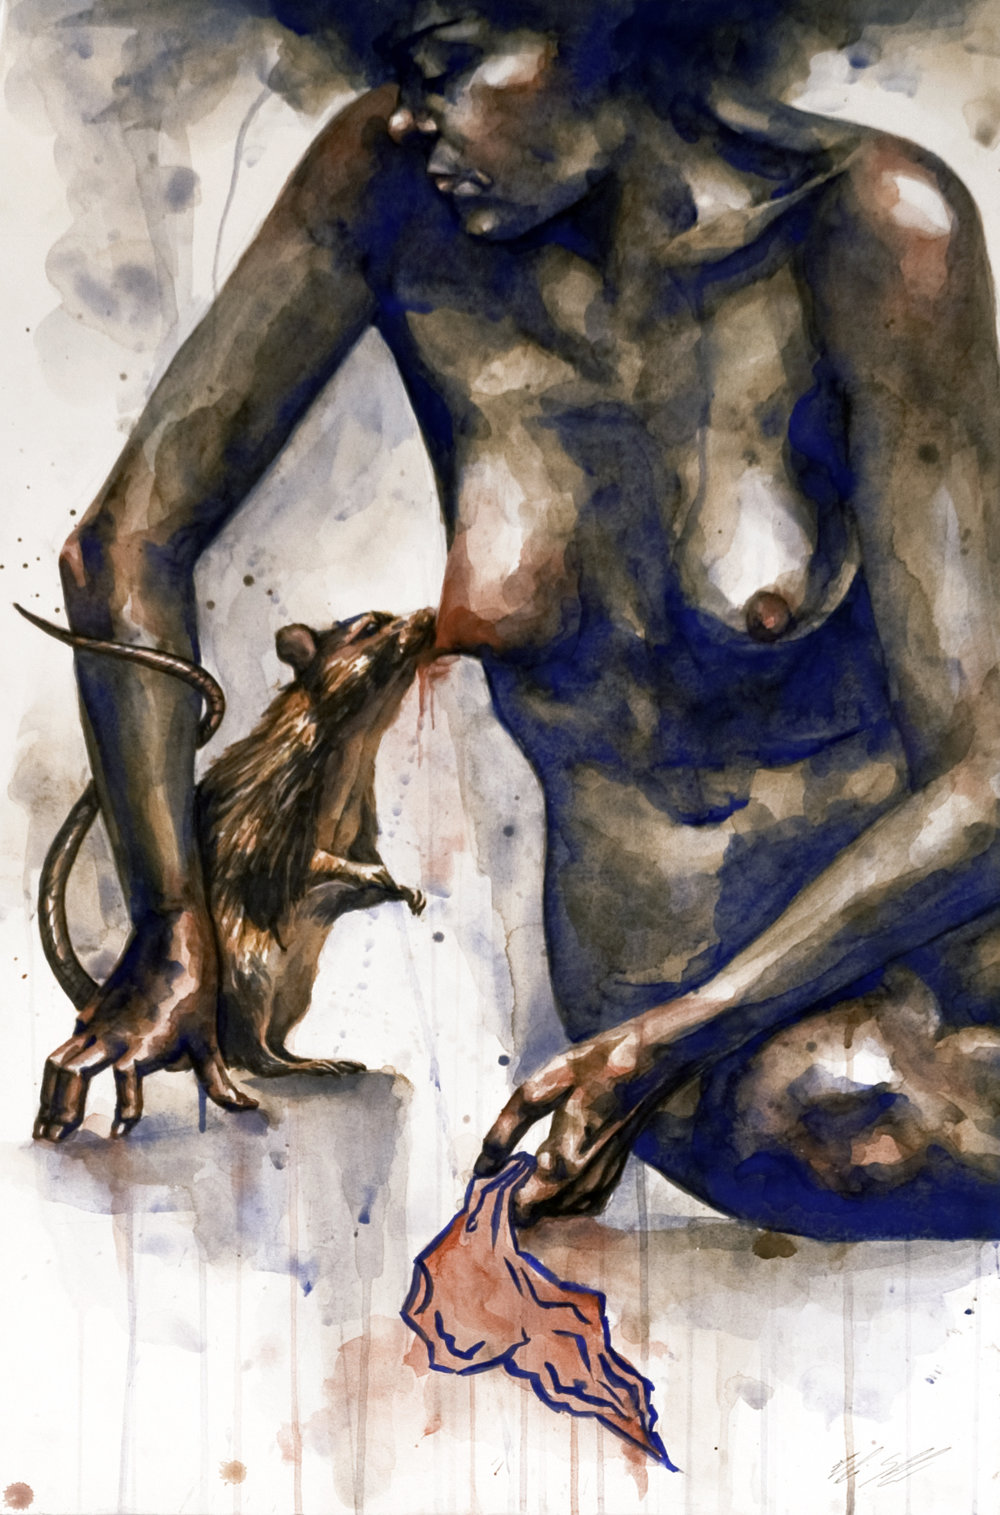 Shoaf_Surrogate_2010_30x20_Watercolor_312.jpg